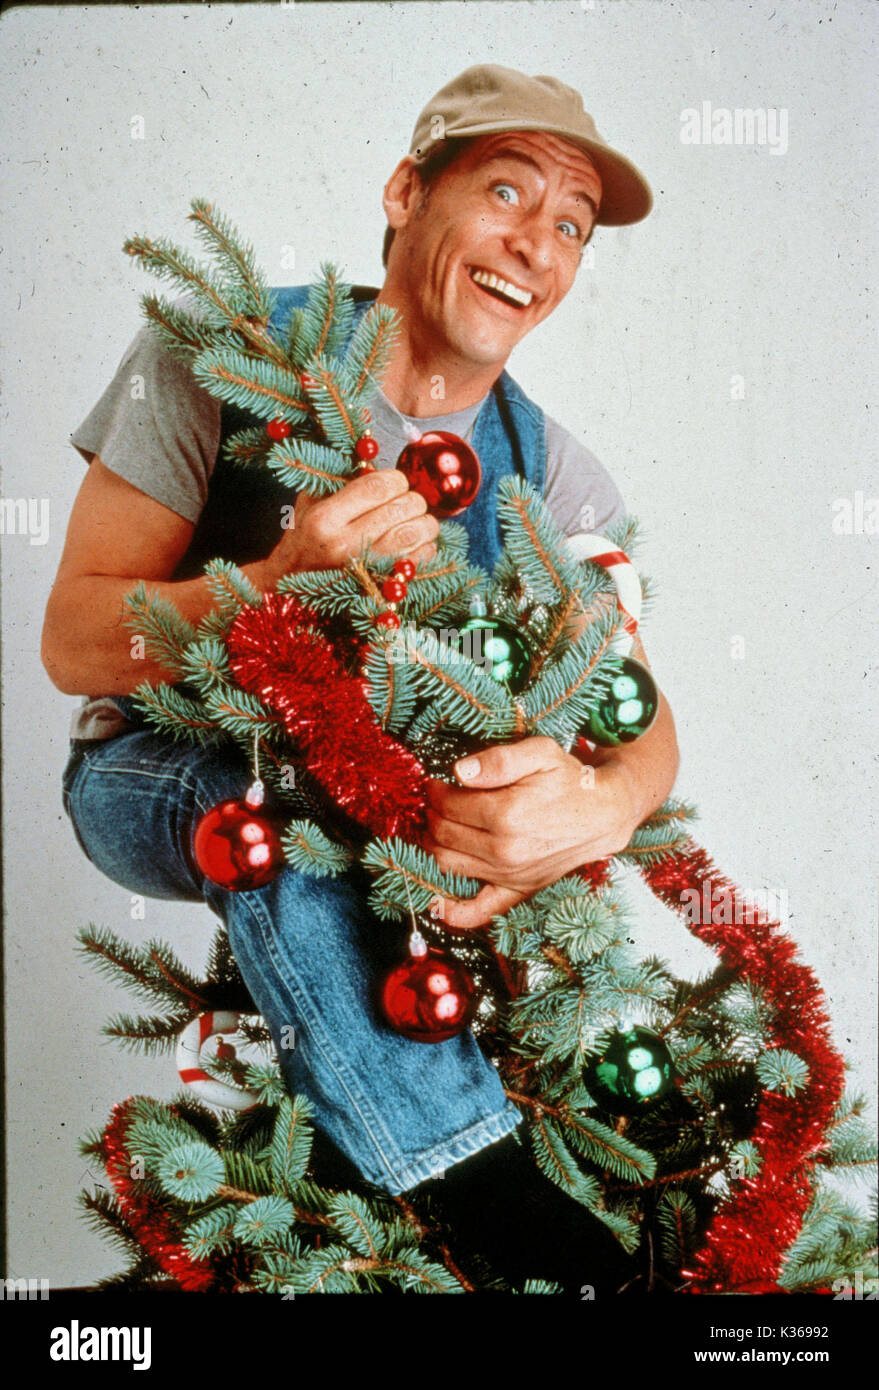 ernest saves christmas jim varney date 1988 stock image - Ernest Saves Christmas